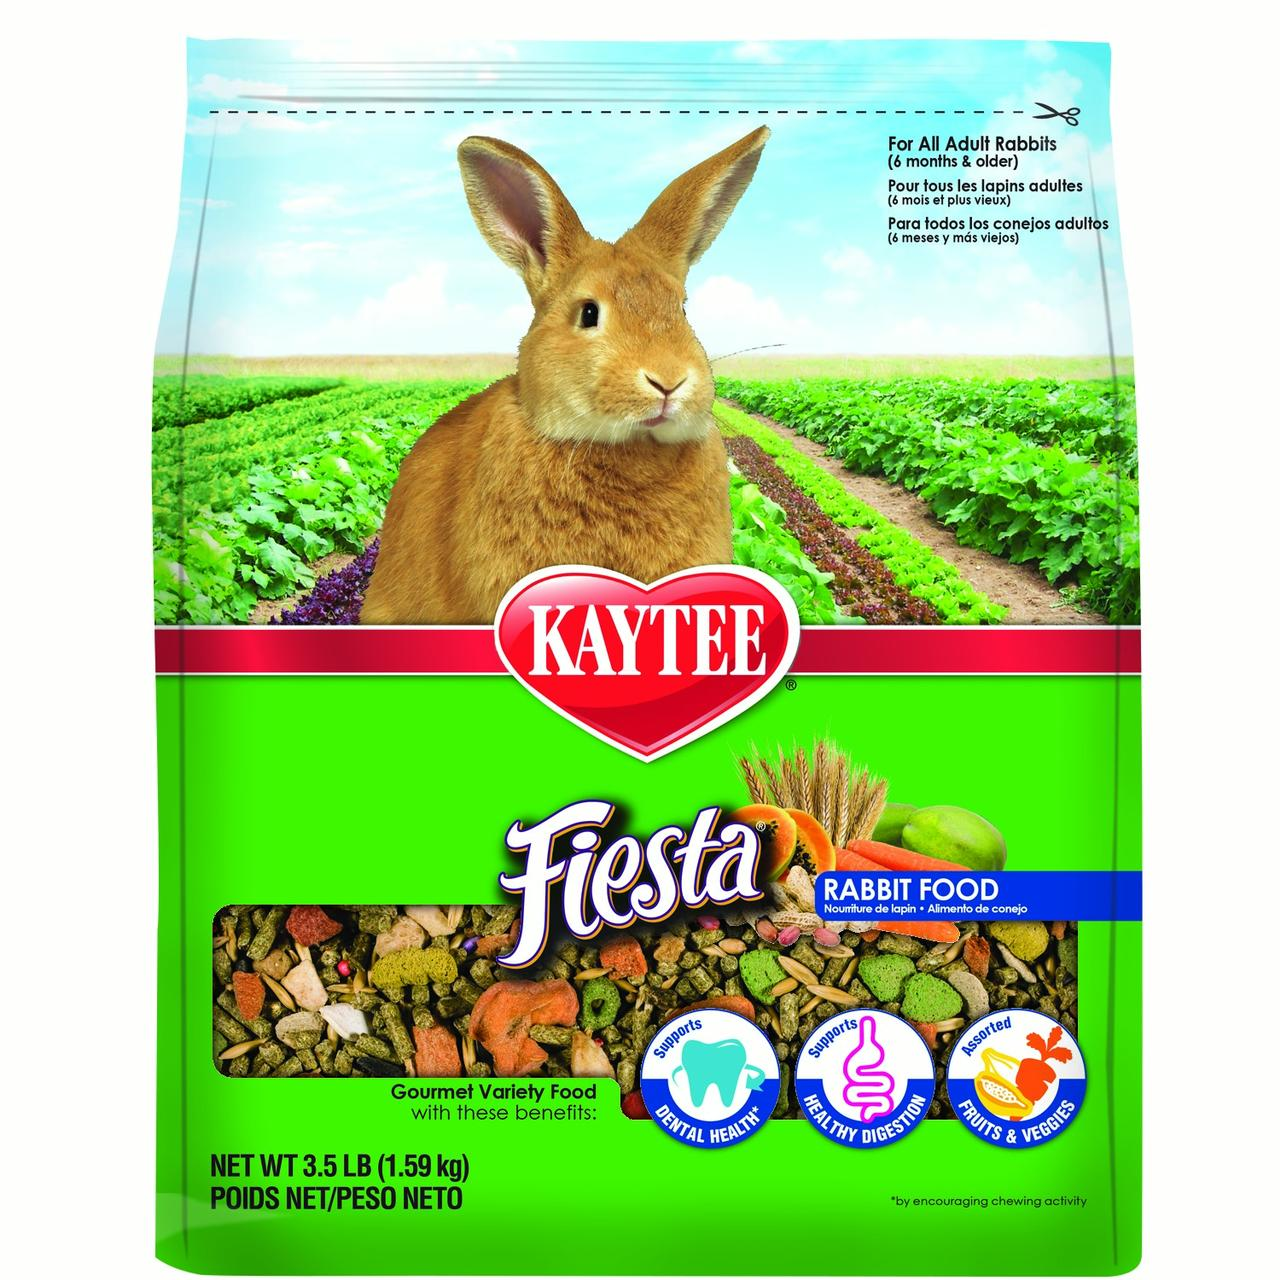 Kaytee Fiesta Gourmet Variety Diet Rabbit Food, 3.5 Lb by Kaytee